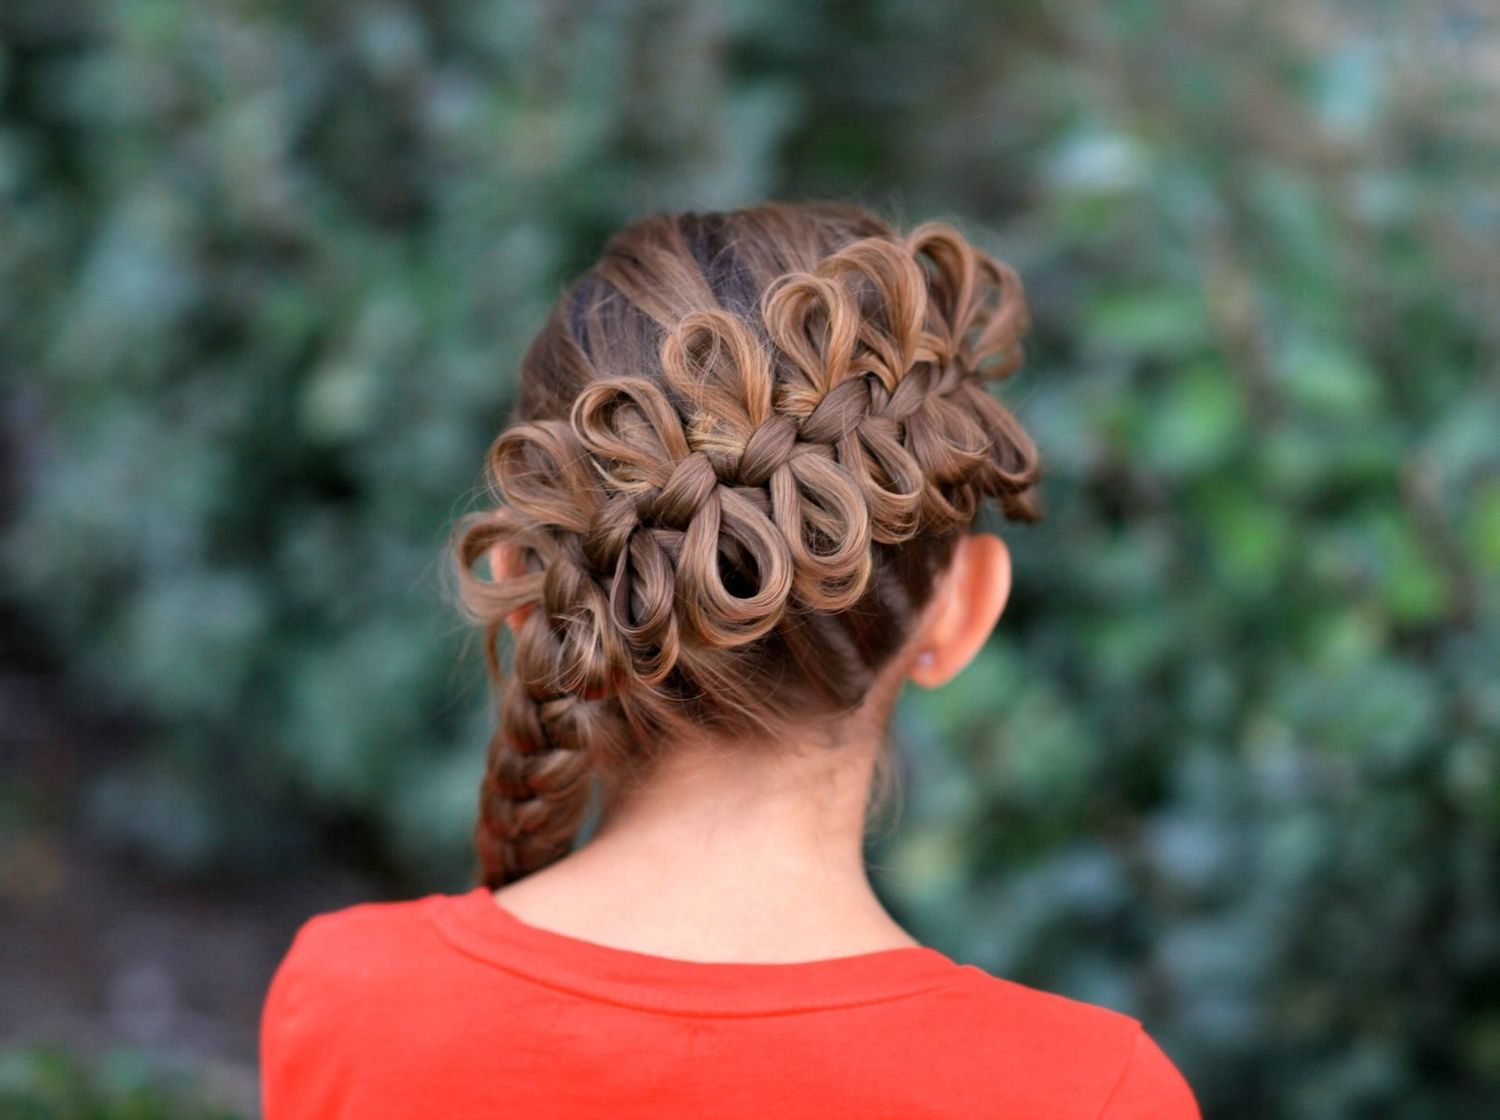 Groovy Kids39 Preposterous Updos Are Youtube Senstations The Cut Hairstyle Inspiration Daily Dogsangcom